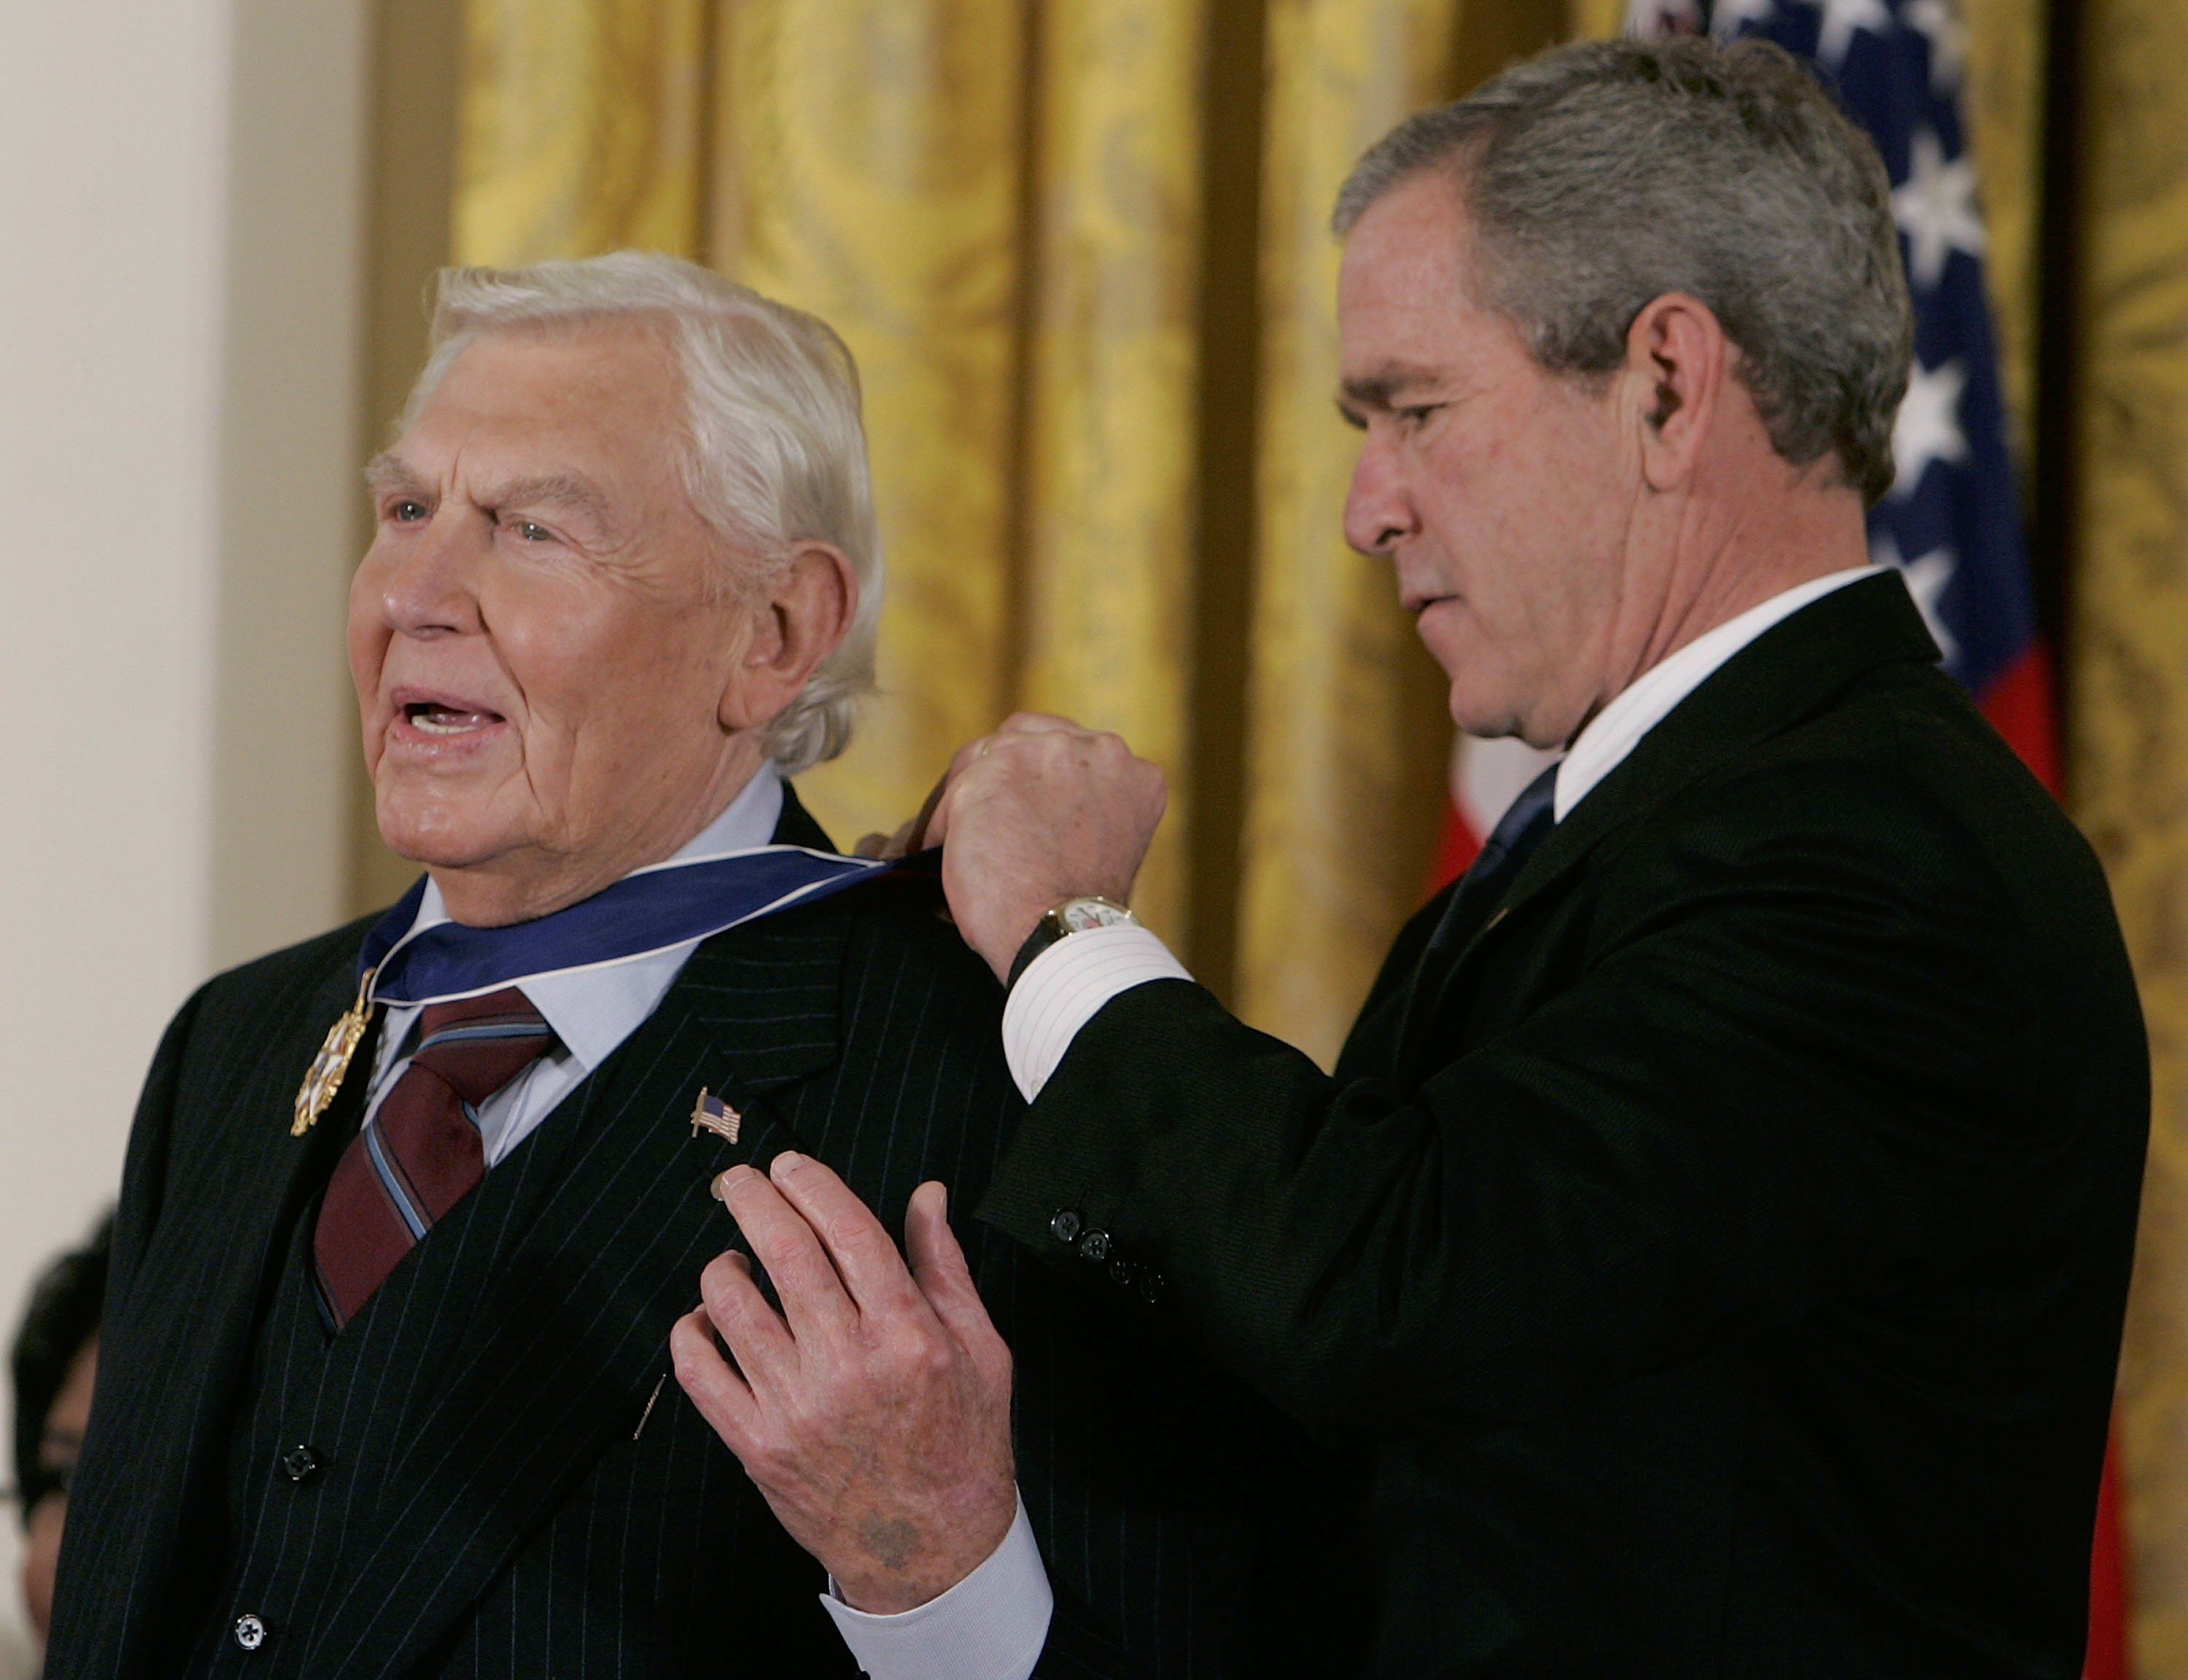 Andy Griffith recieves the Medal of Freedom from the then U.S. President George W. Bush. | Source: Getty Images